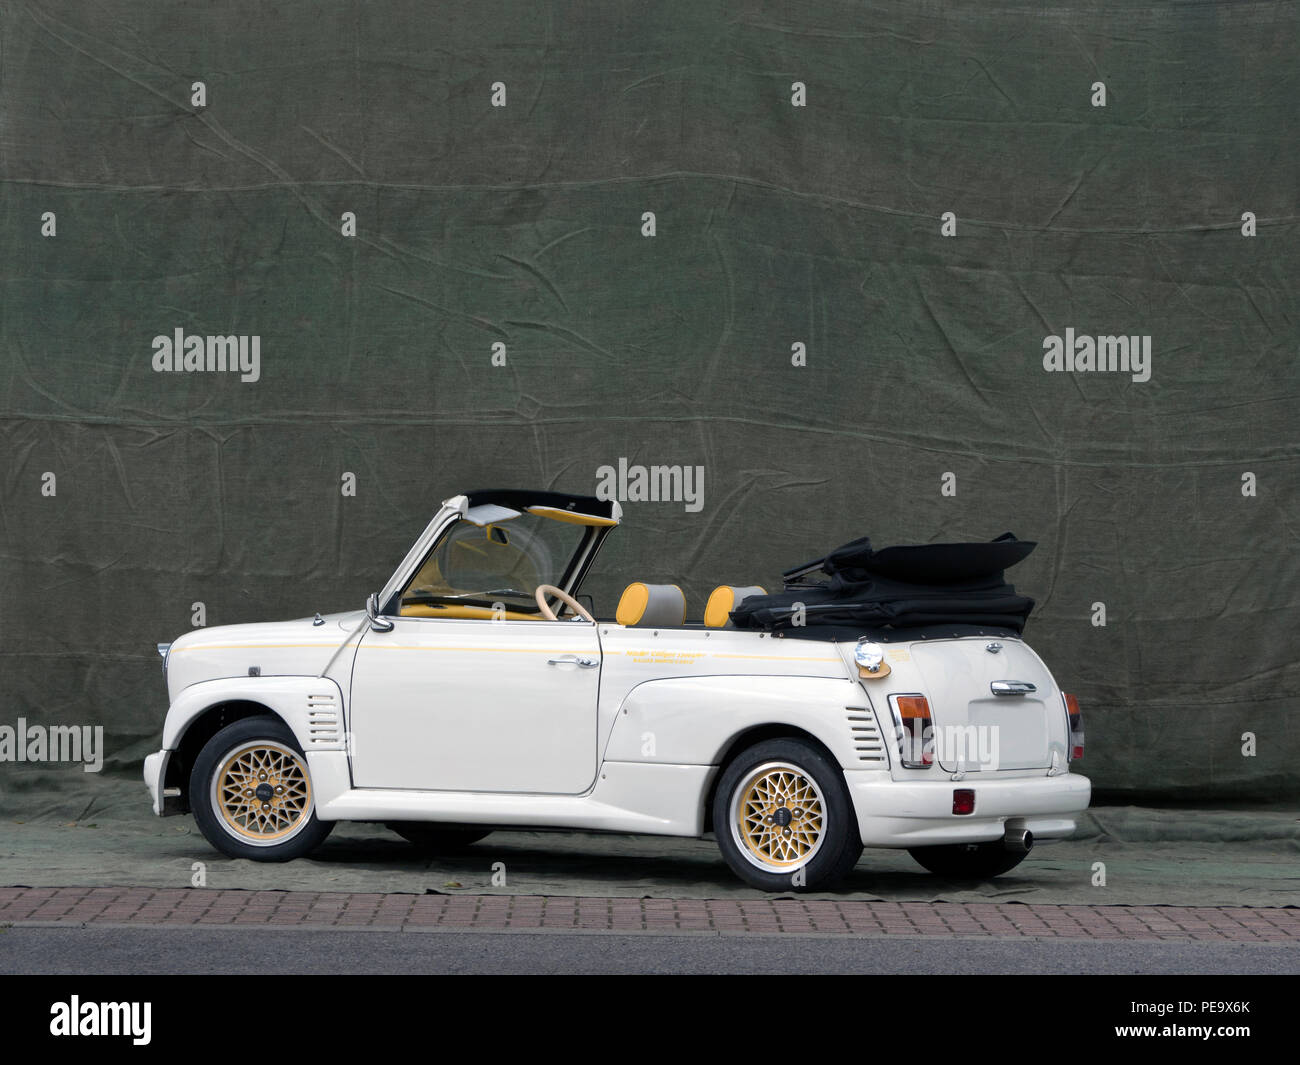 2000 Rover Mini Convertible With A Japanese Body Styling Kit Stock